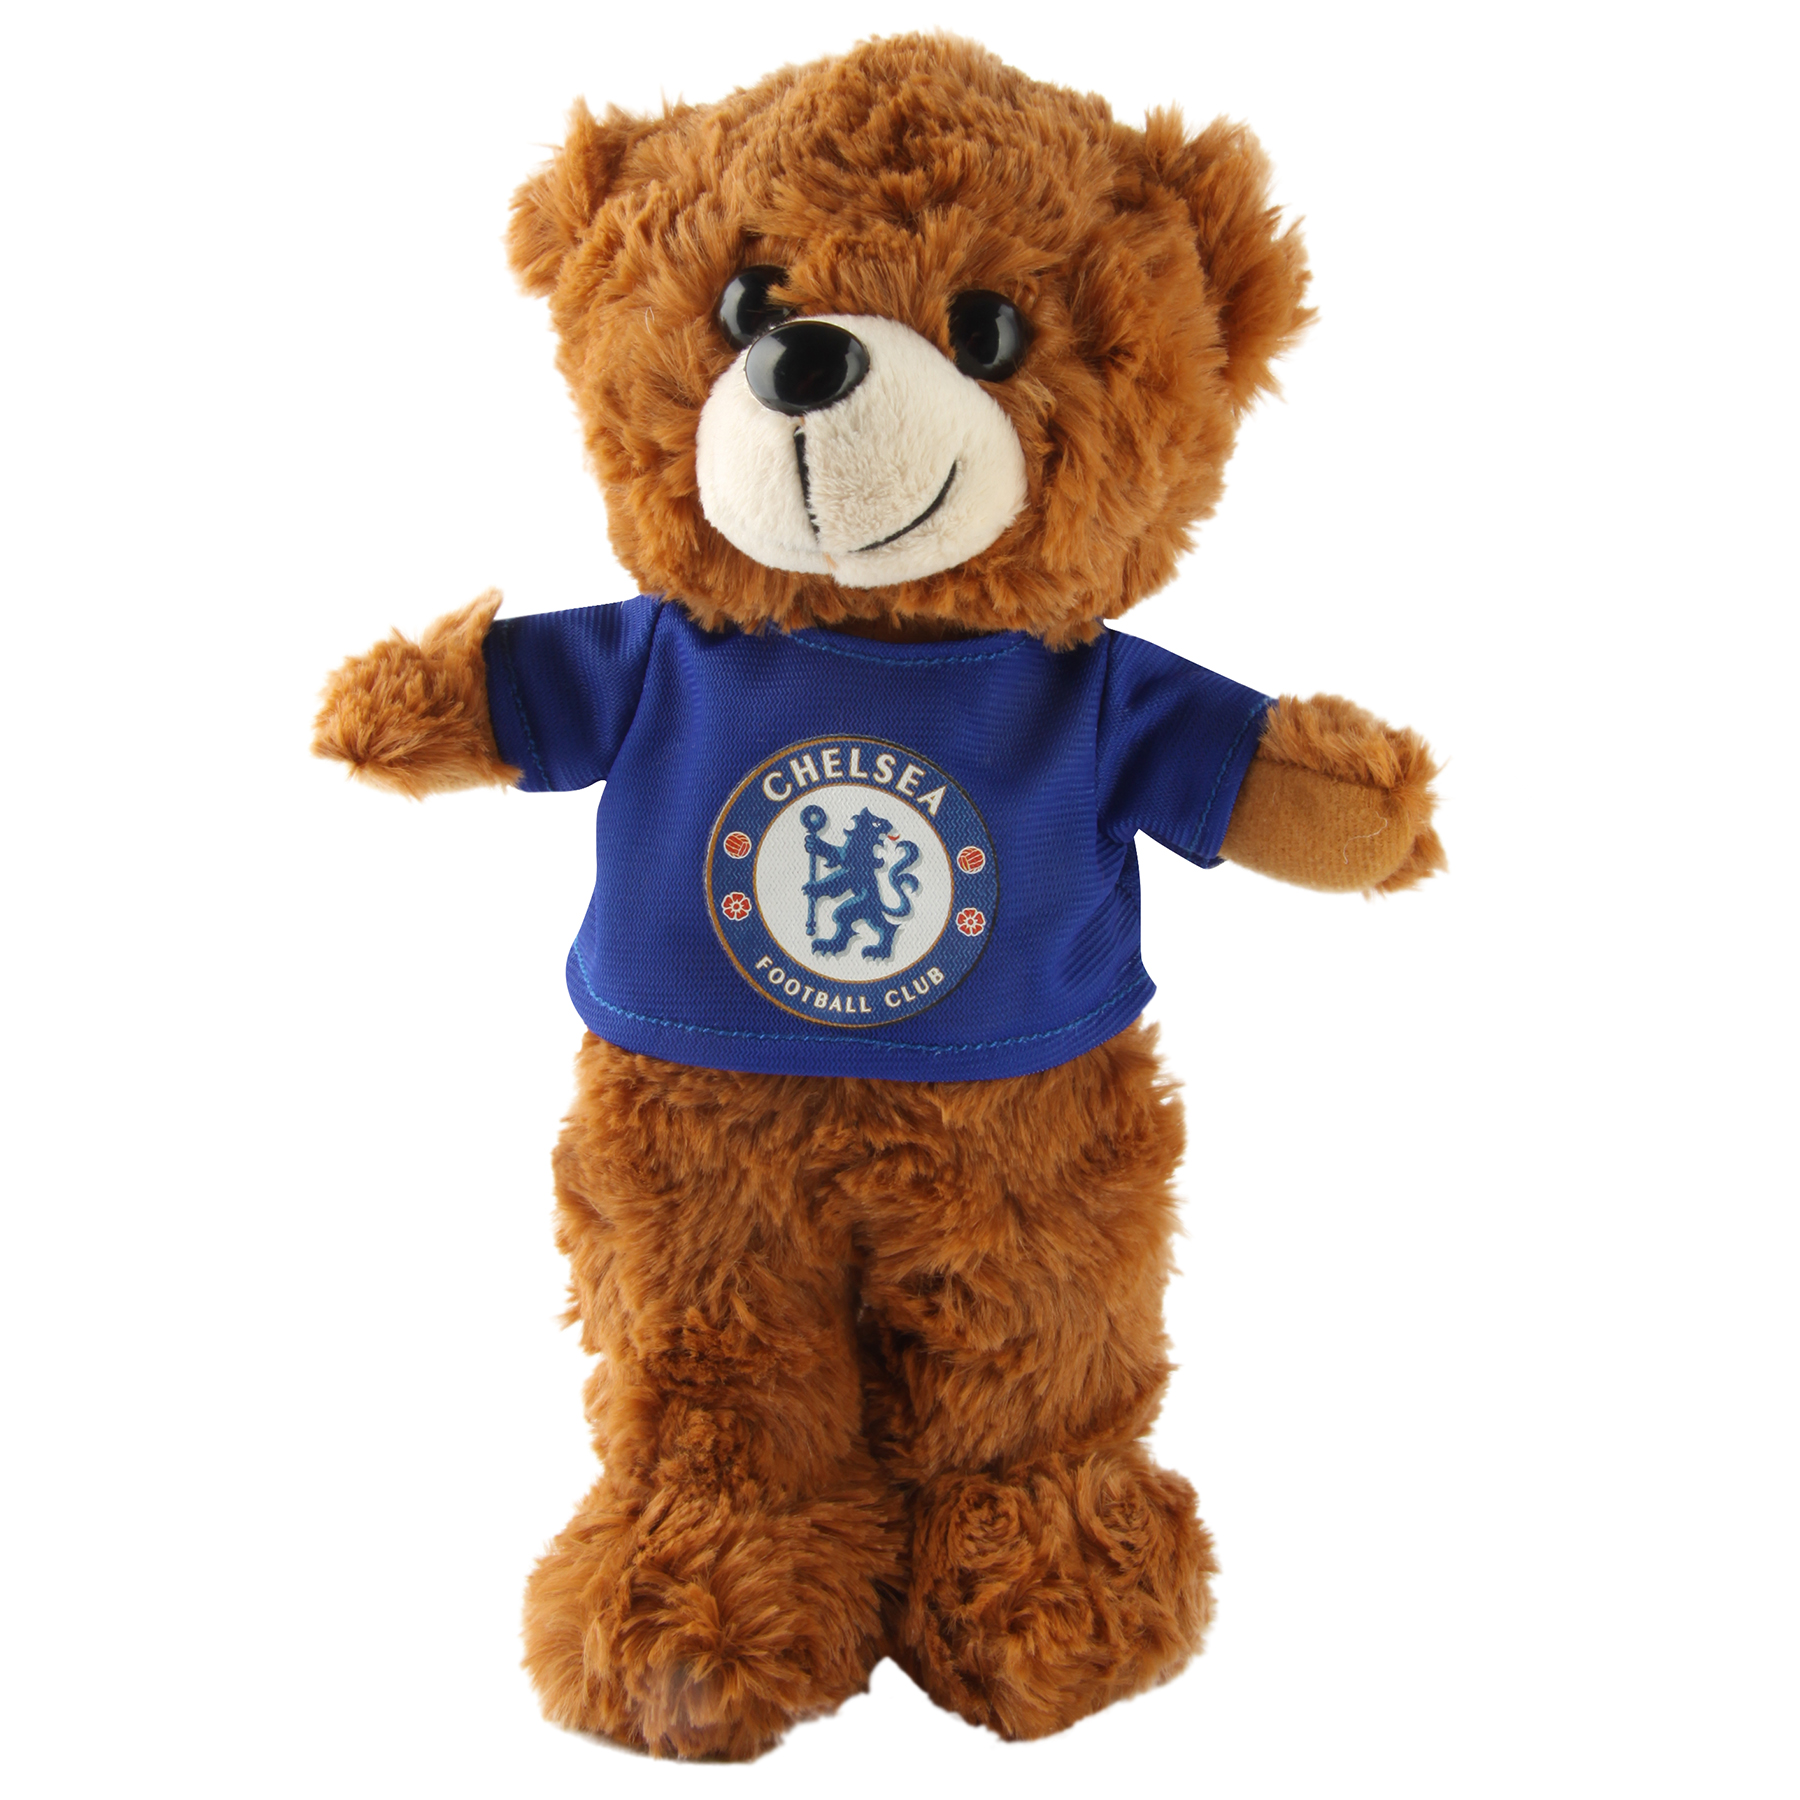 Image of Chelsea Fuzzy Bear - 9 Inch